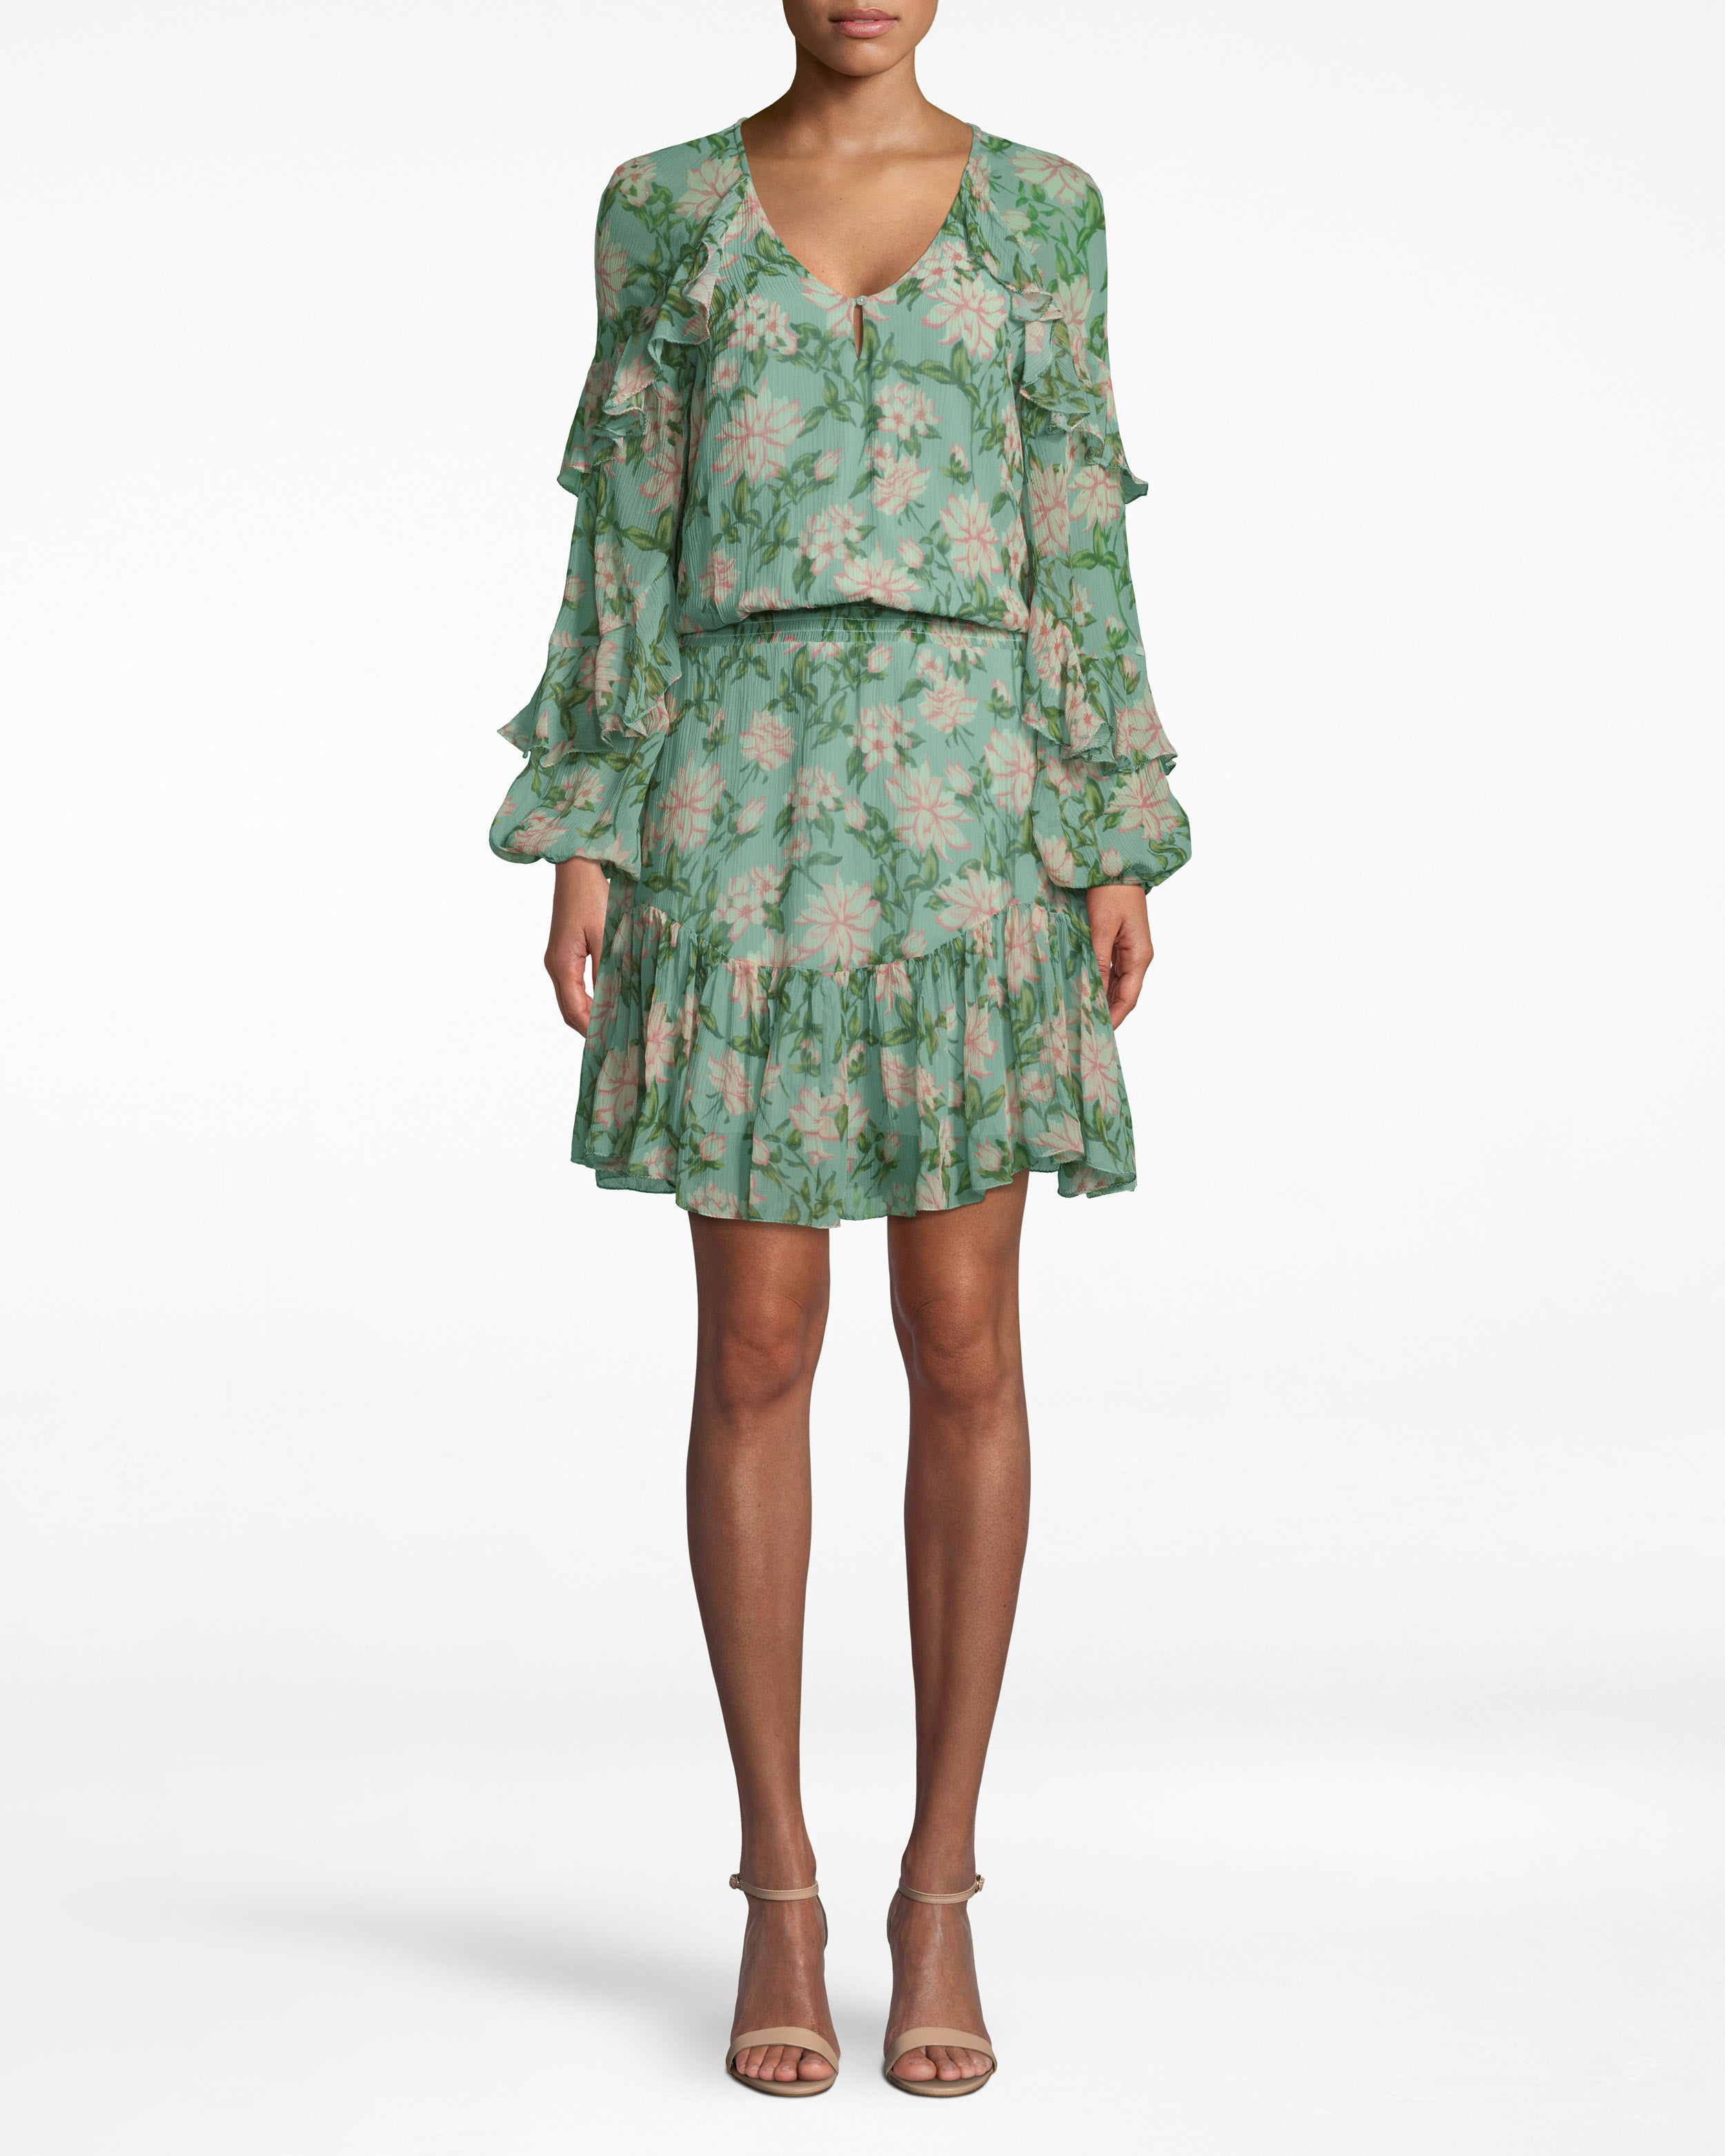 nicole miller spring dream long sleeve ruffle dress in spring dream sage | silk/polyester/spandex | size petite